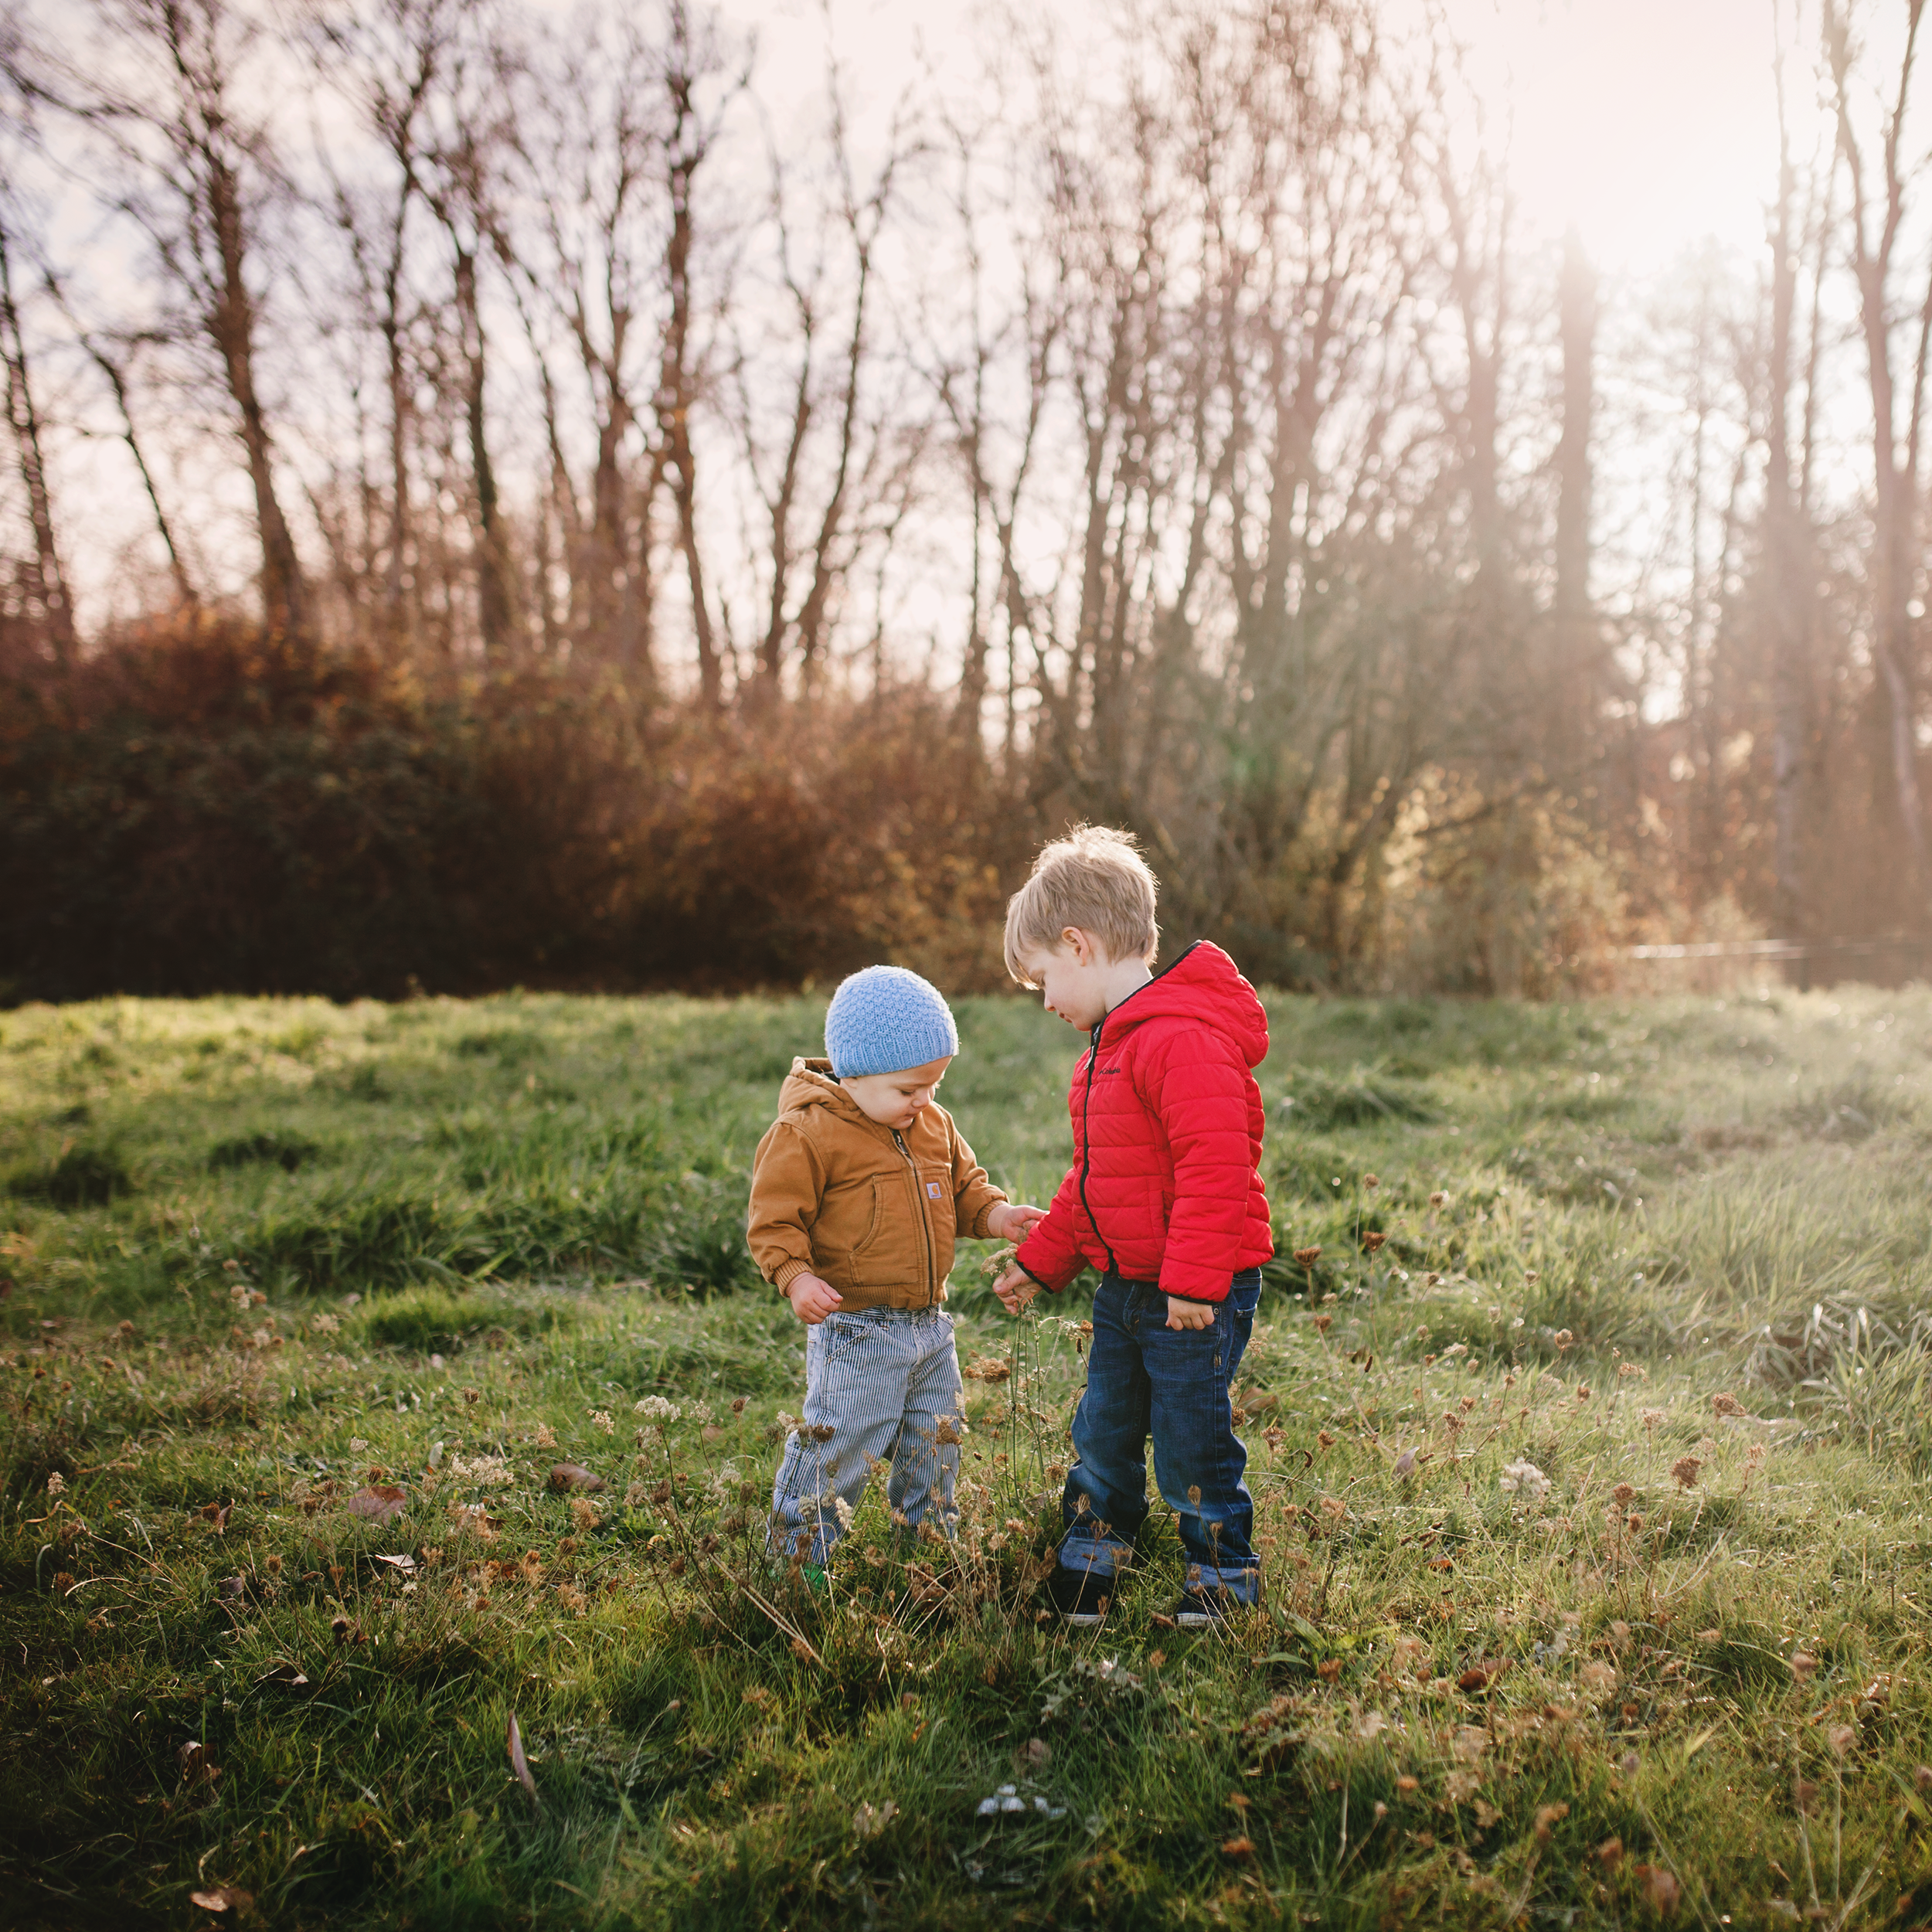 """Children   For 3-12 months I offer in-home sessions either in my studio or lifestyle in your own home. Older than that I love exploring the outdoors with them - letting them be themselves, not constrained by """"sit still"""" and capturing the real spirit of who they are now."""